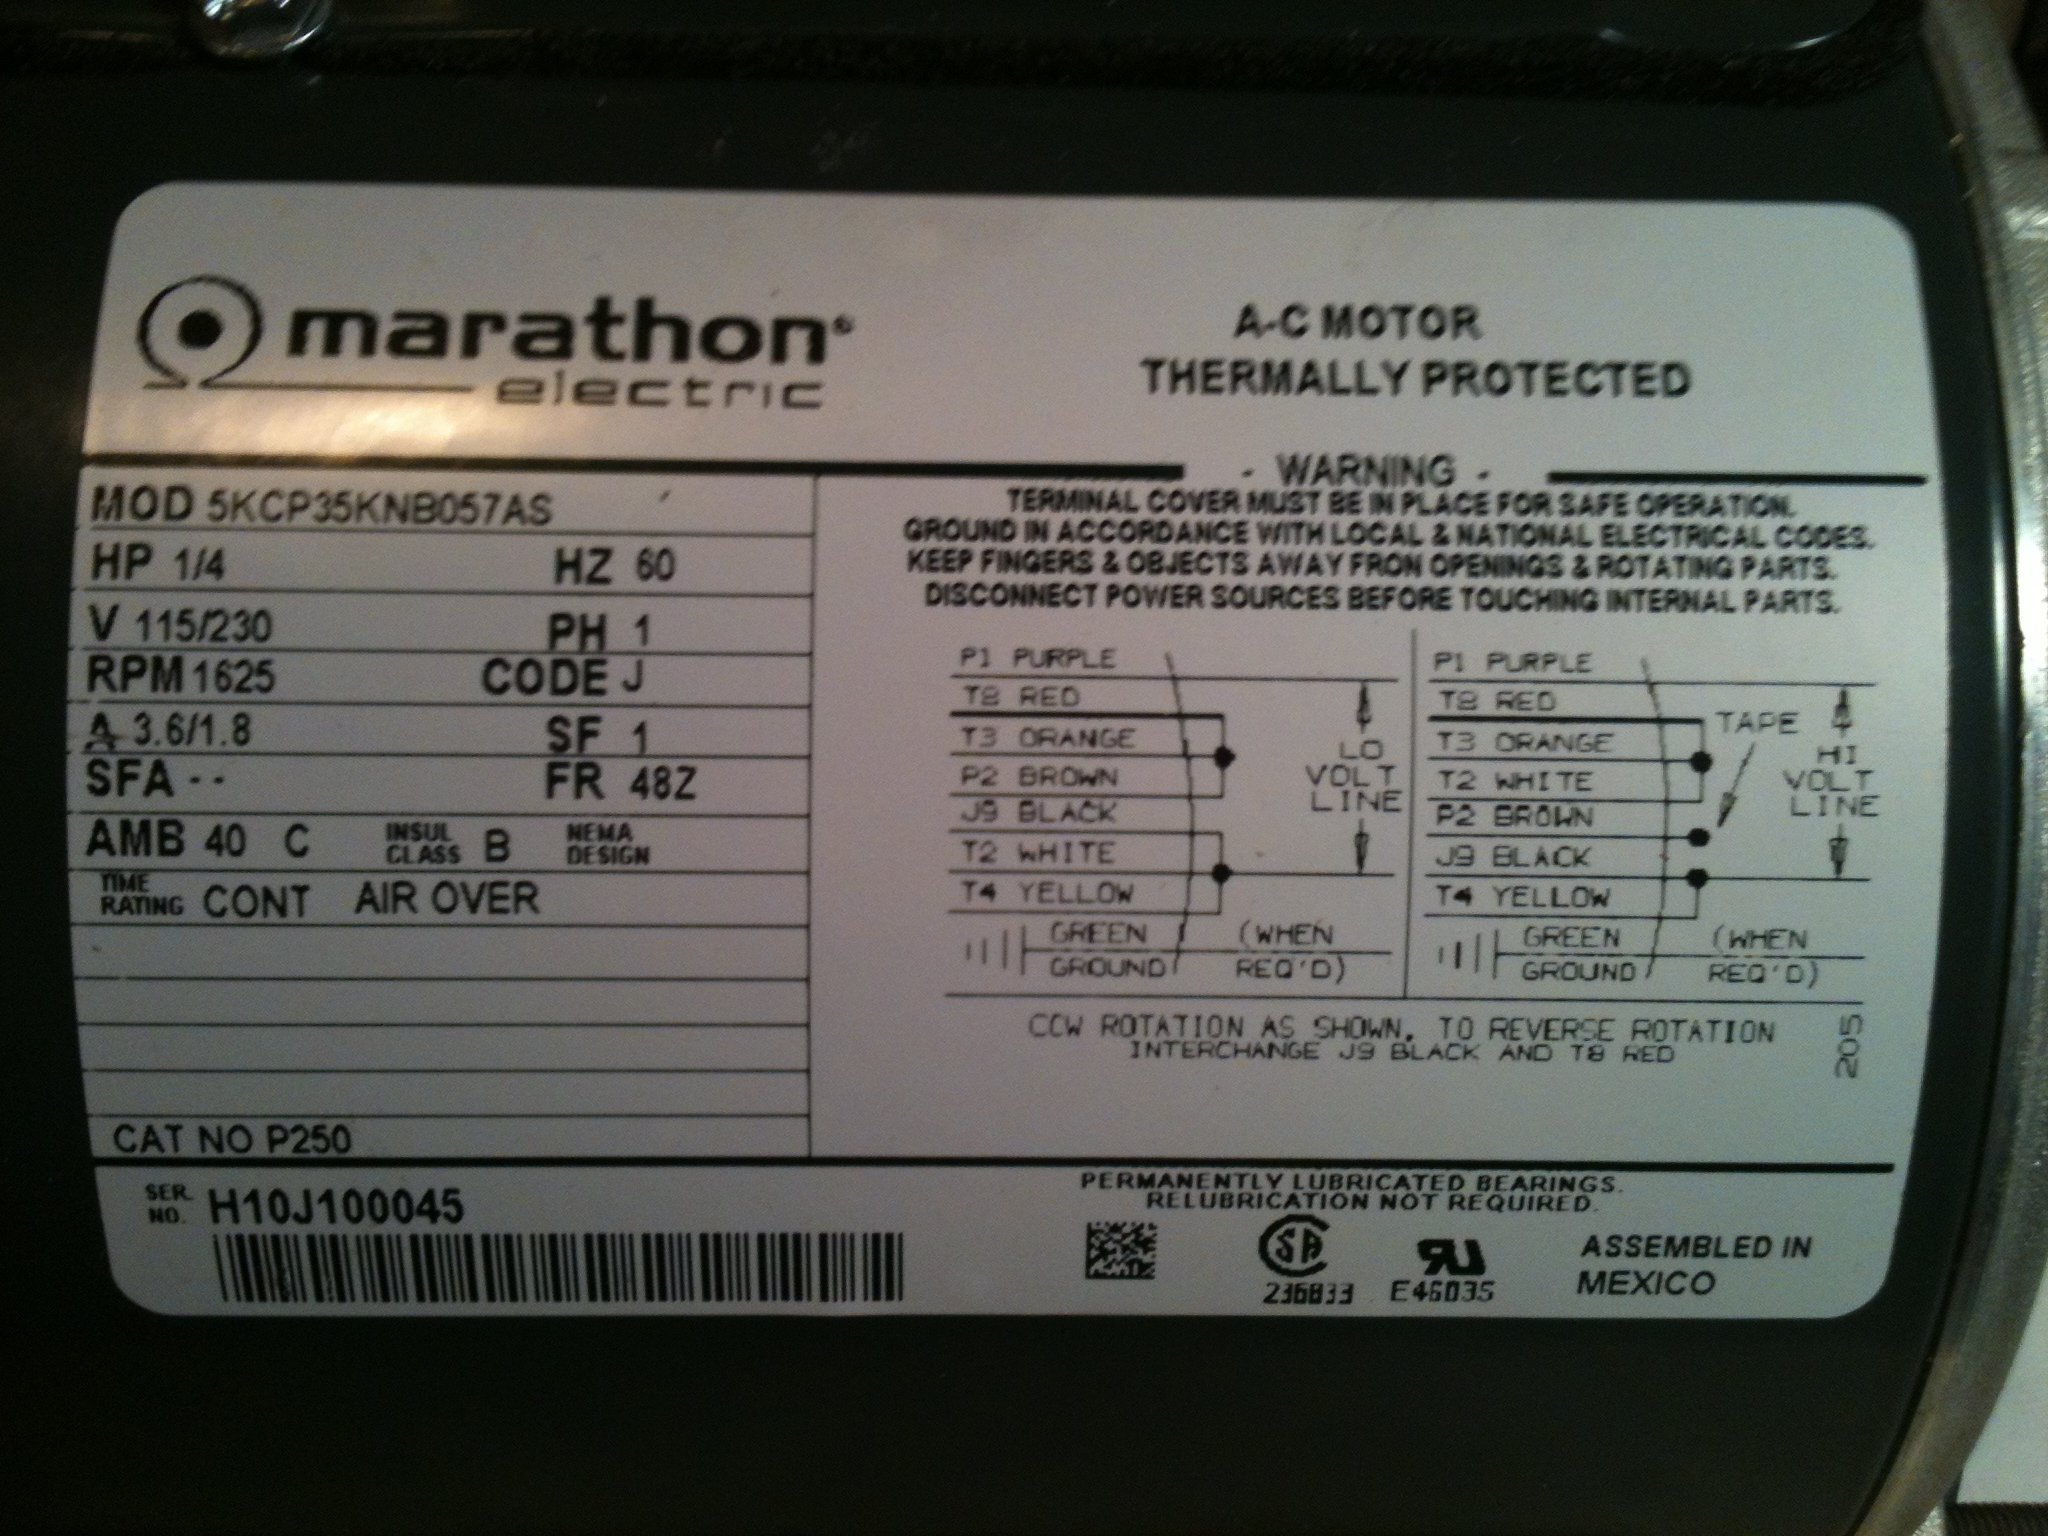 3 Phase Motor Electrical Schematics Wiring Library Marathon Electric Diagram Problems Motorssite Org Example Of